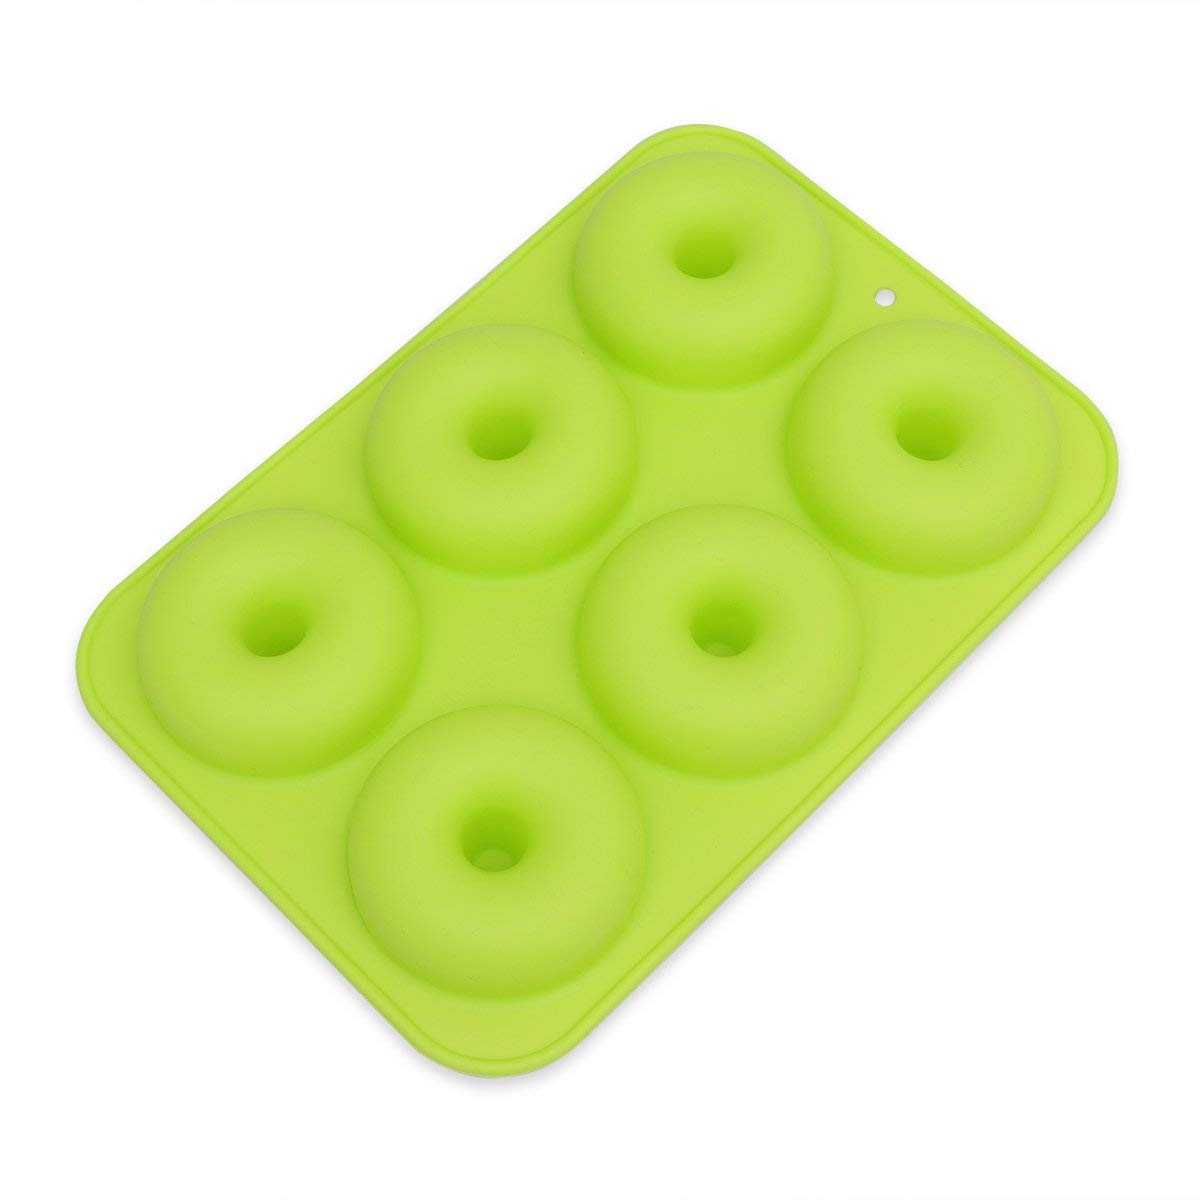 BESTOMZ 6-CavitySilicone Donut Baking Pan/Non-Stick Donut Mold for Cake Biscuit Bagels Muffins (Green)